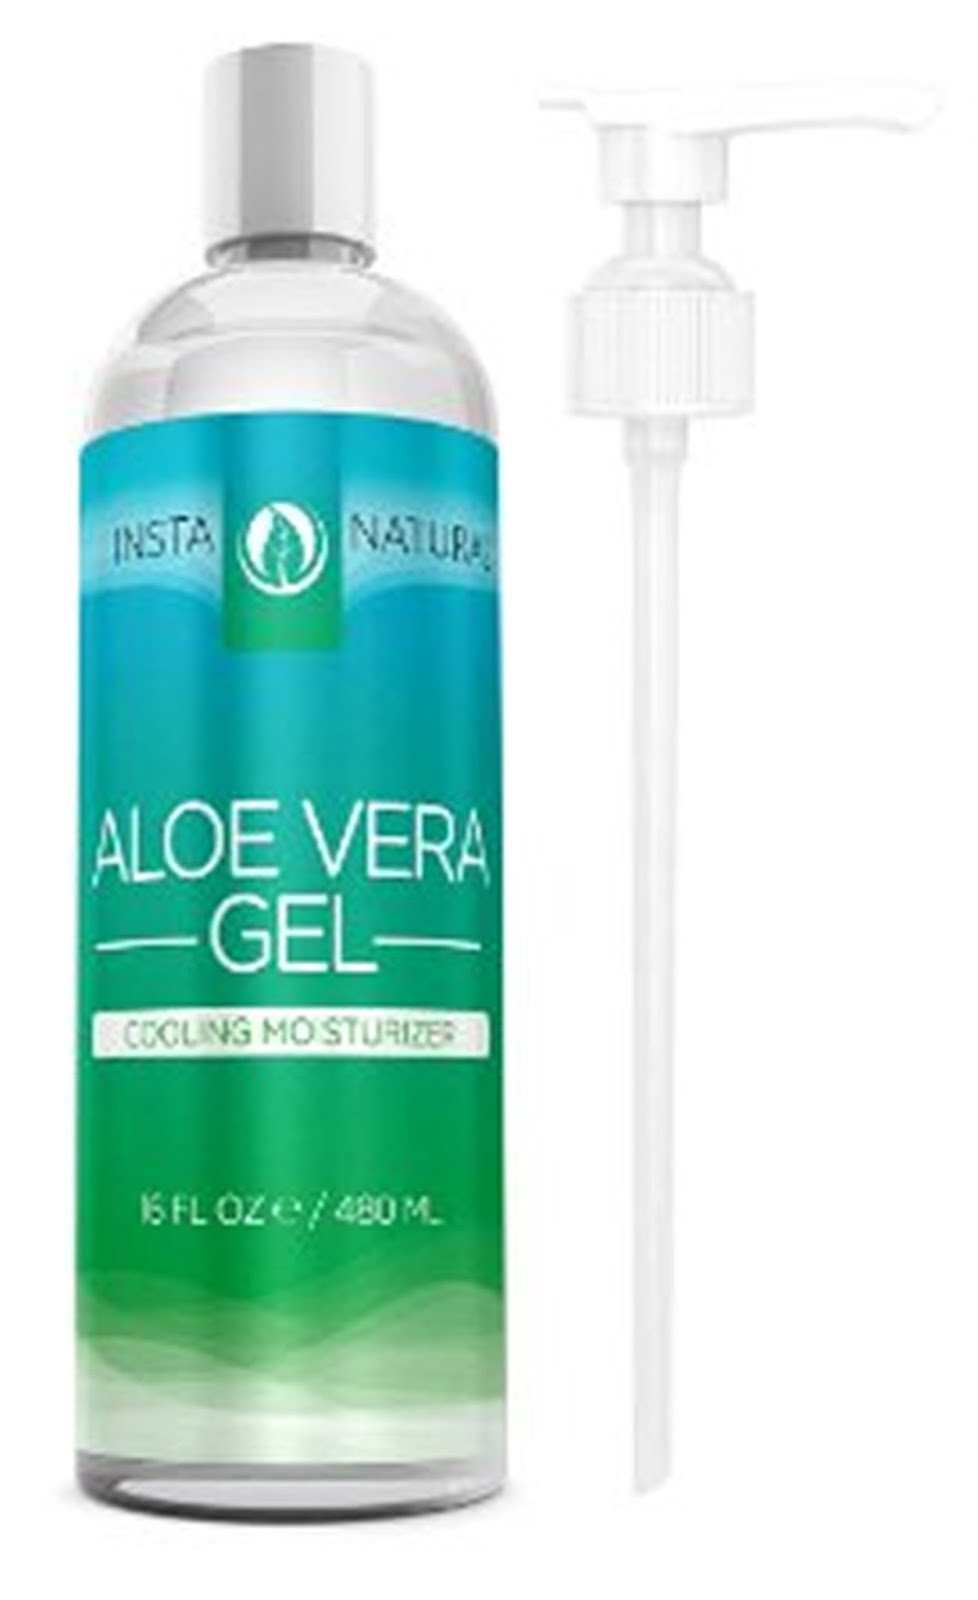 instanatural aloe vera gel cooling moisturizer blonde male. Black Bedroom Furniture Sets. Home Design Ideas